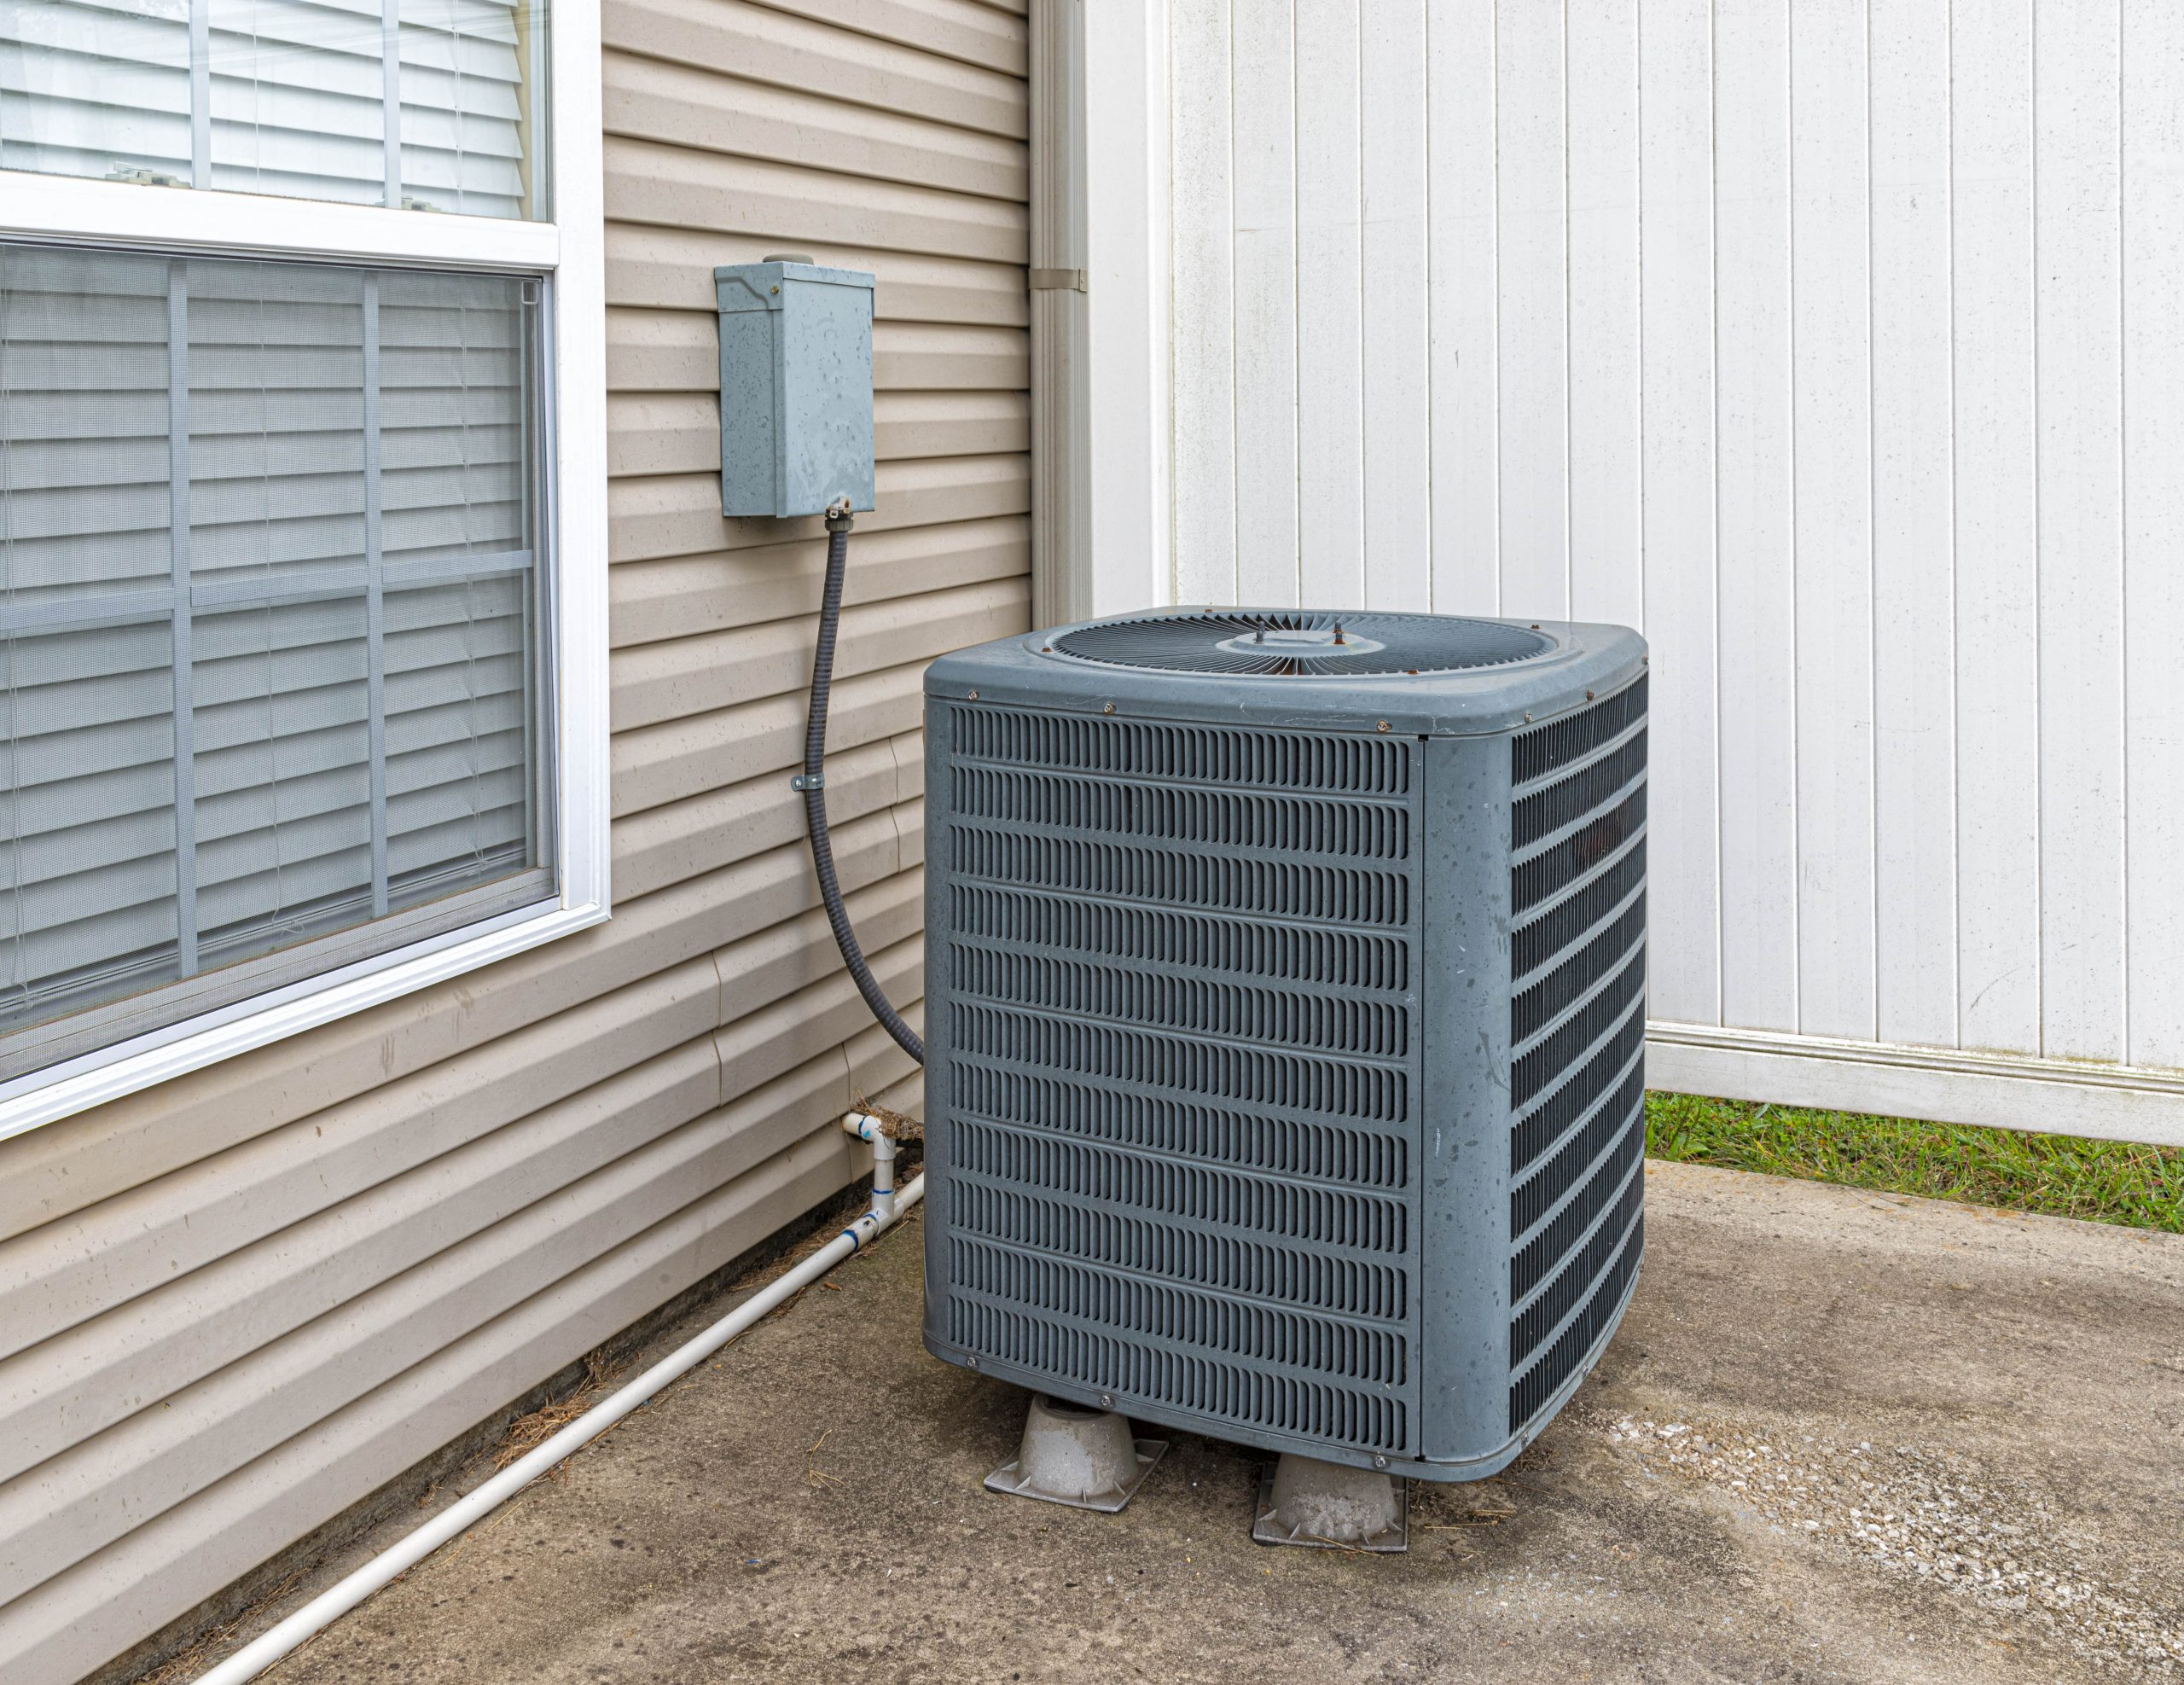 affton heating and cooling services